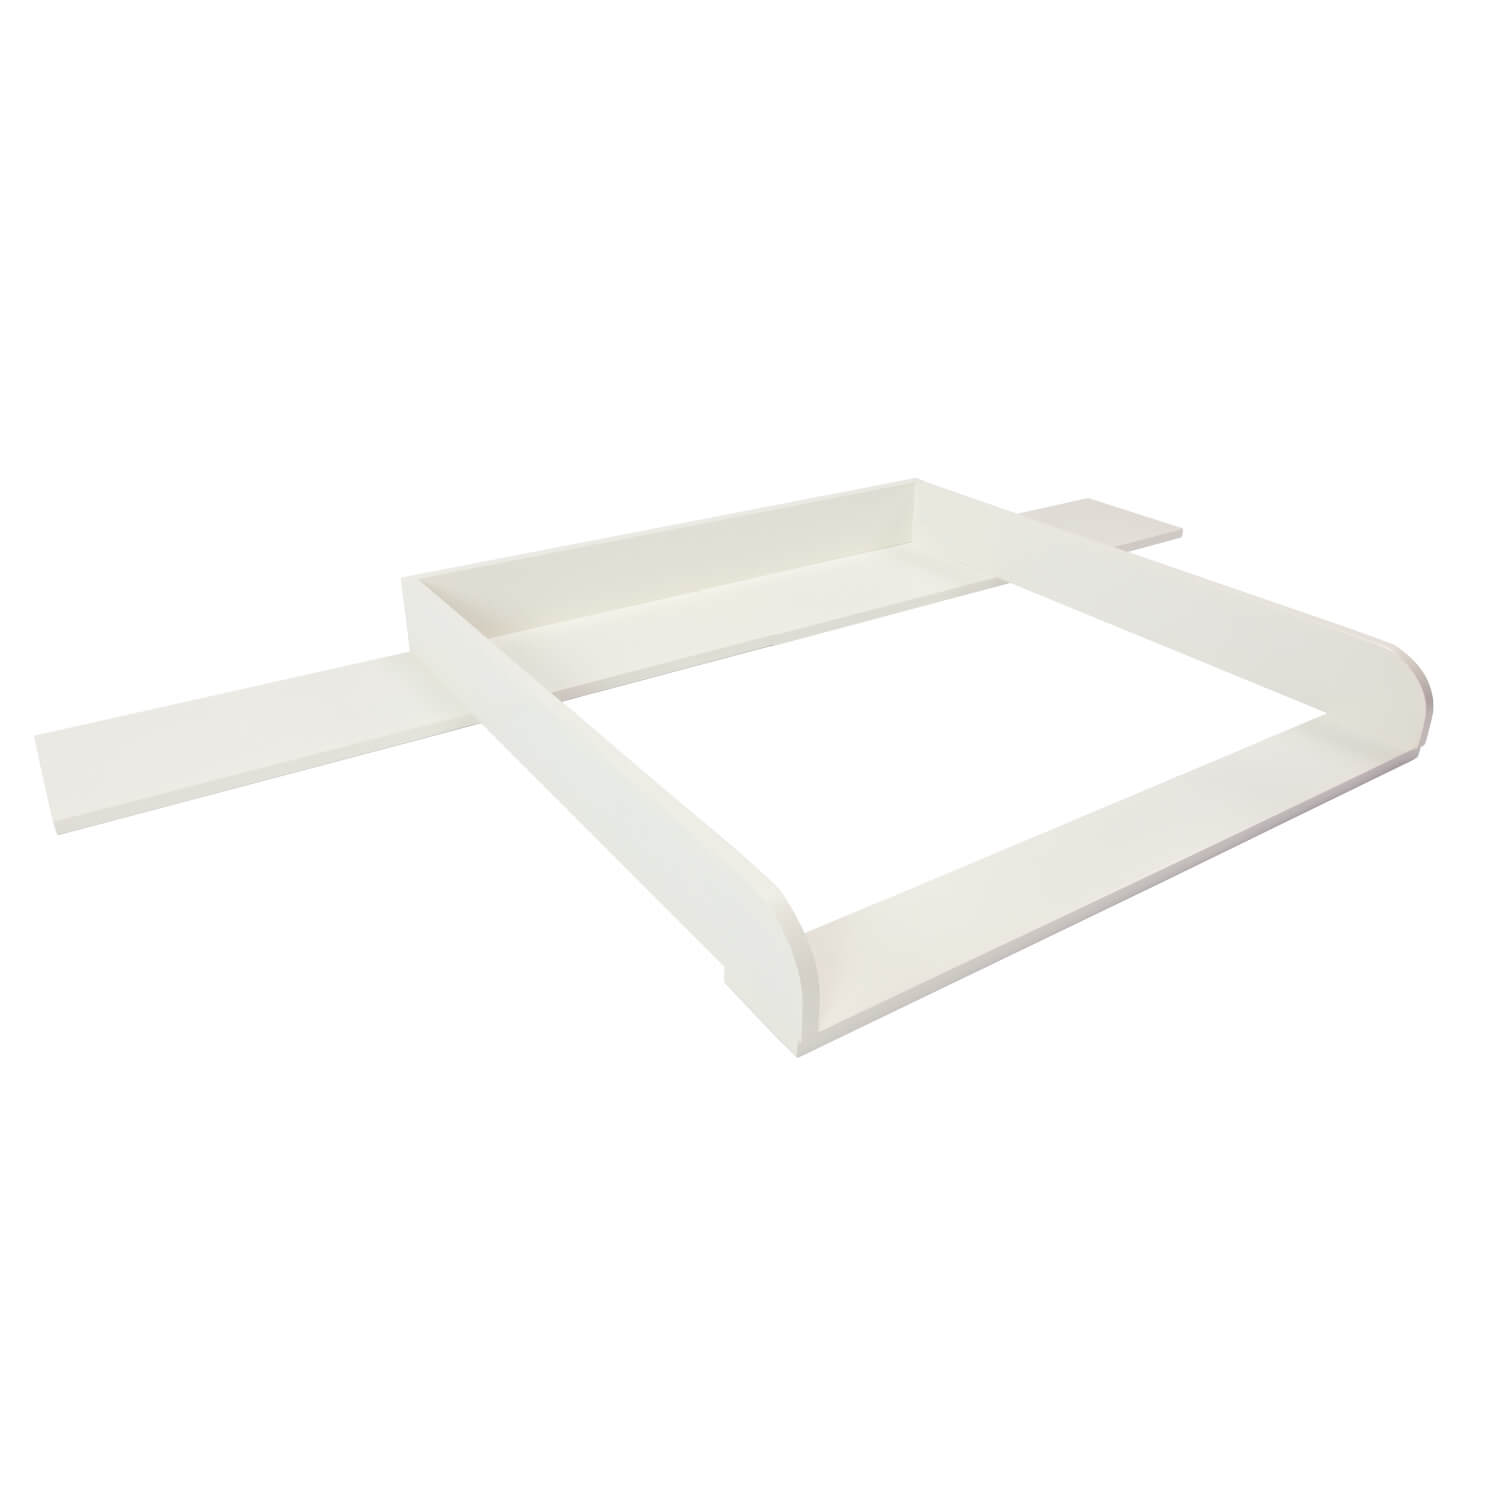 Lennard changing top with 159.5 cm wide cover, white, IKEA Malm